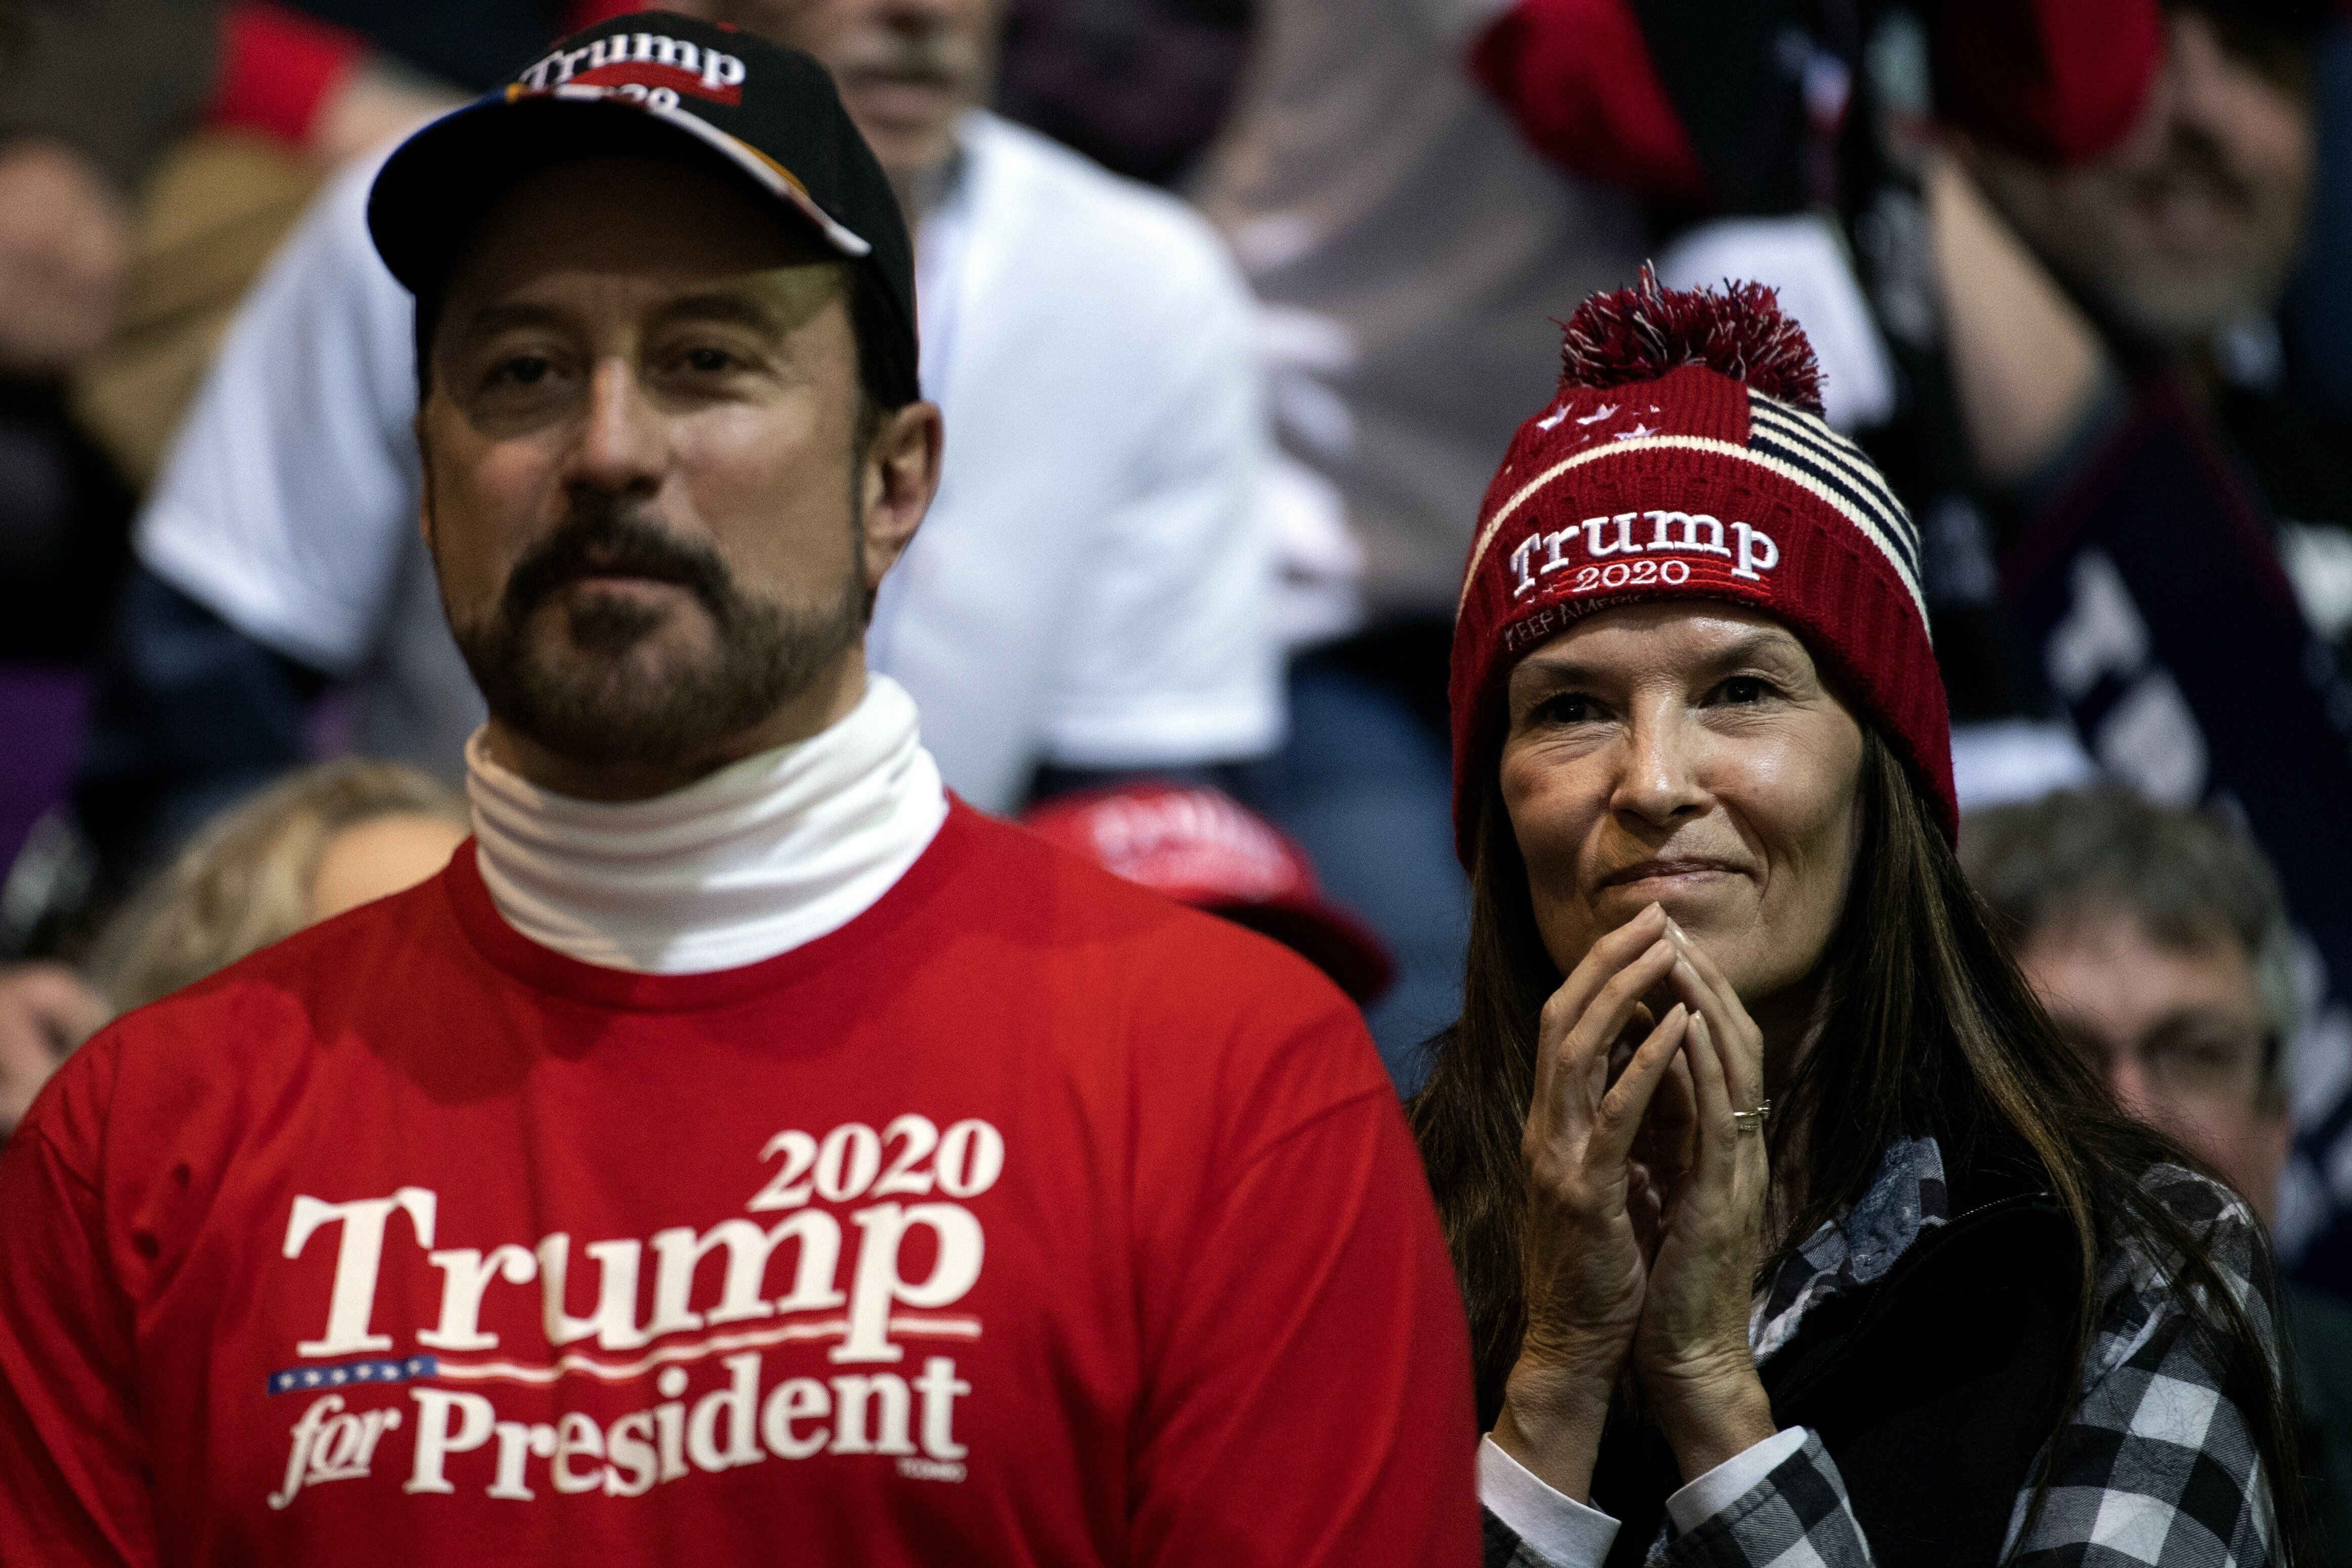 Trump supporters attend a campaign rally for the president in Colorado Springs.